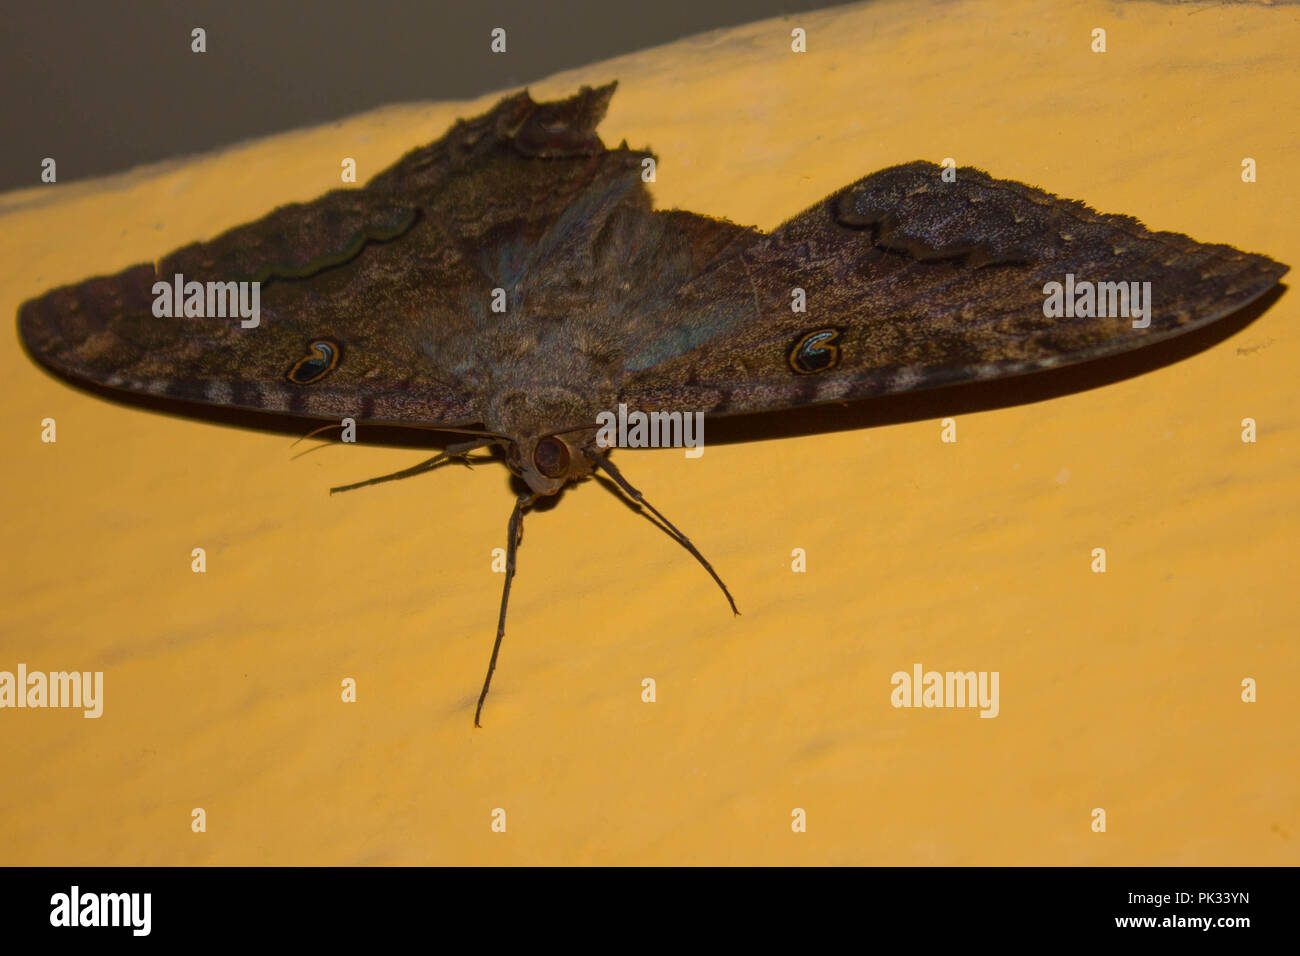 Finely Detailed Moth on a Wall - Stock Image